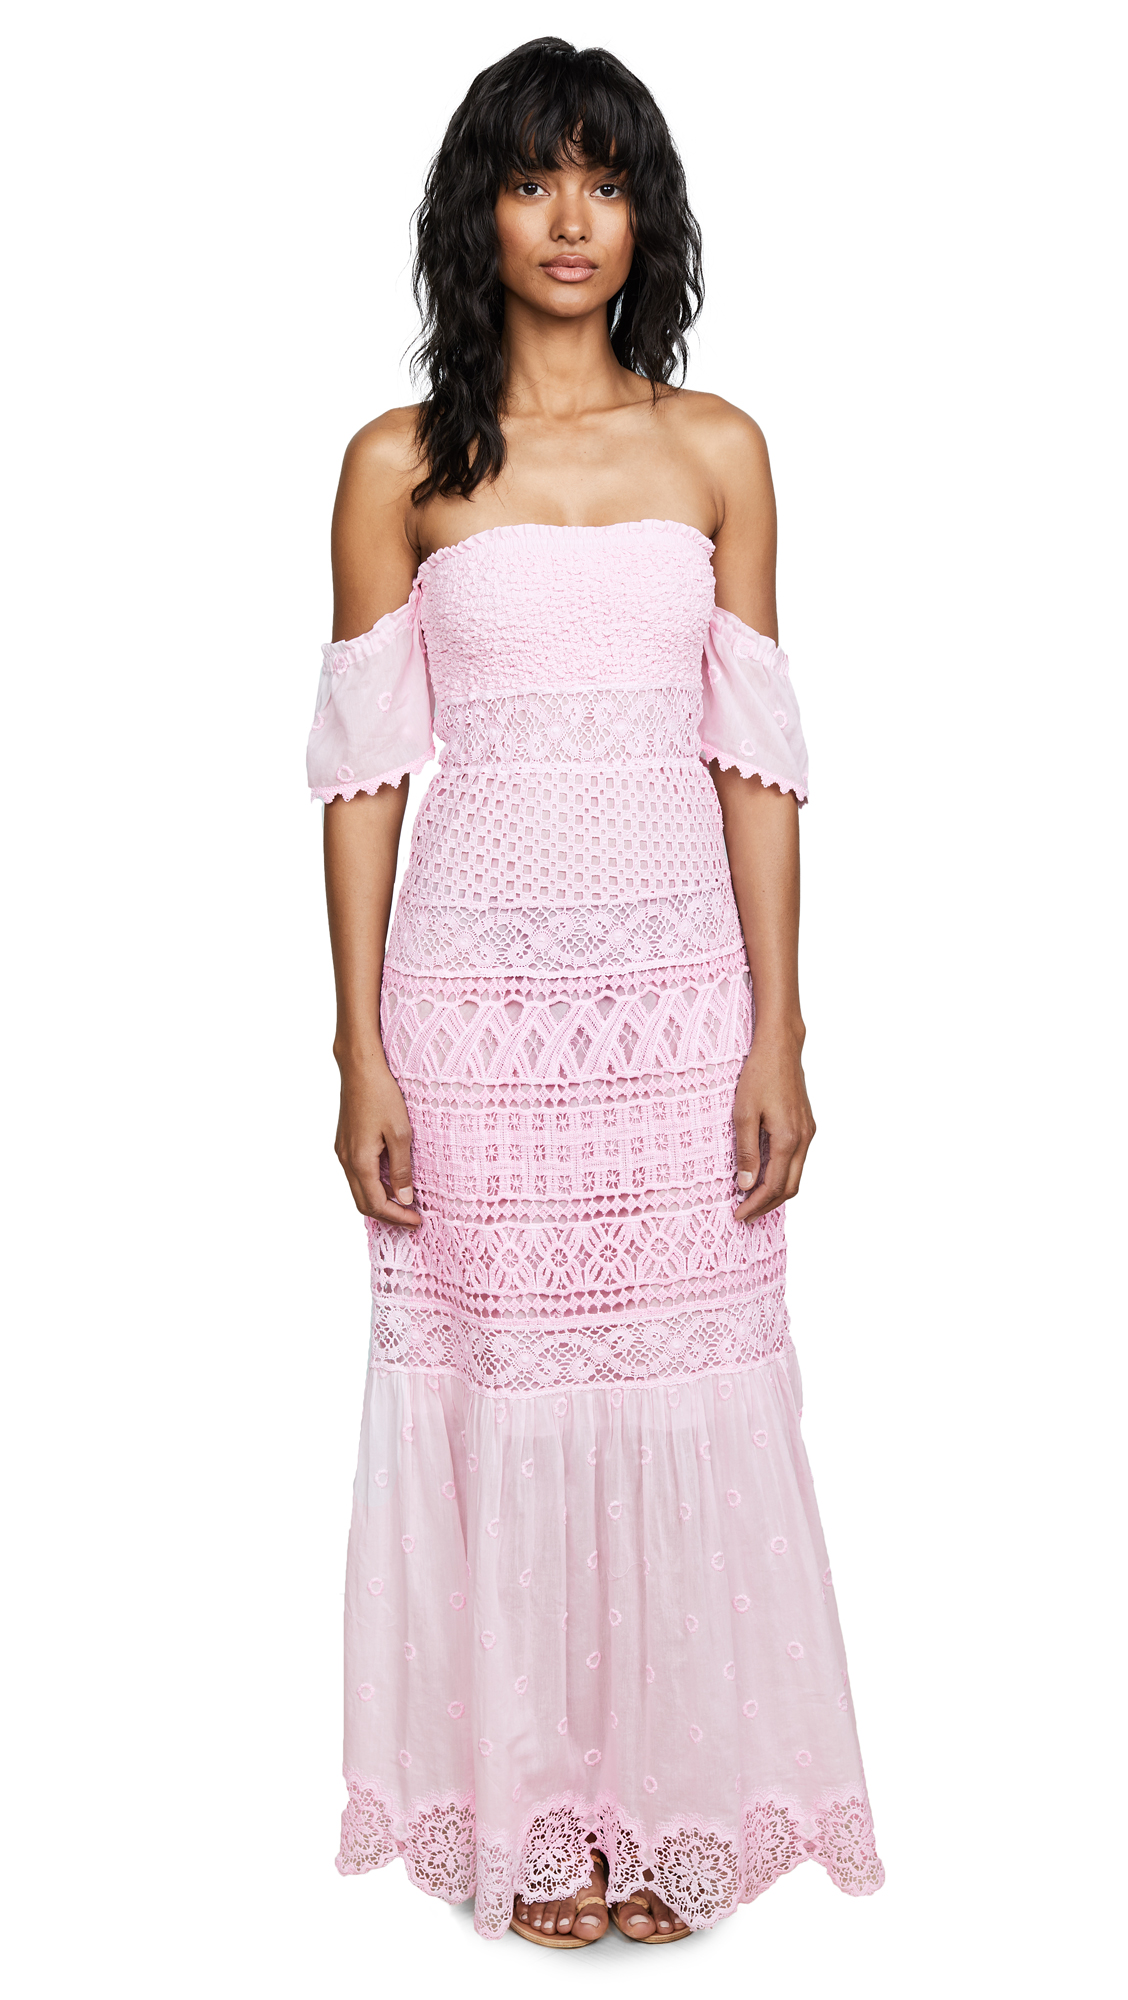 Temptation Positano Bora Bora Dress - Pink